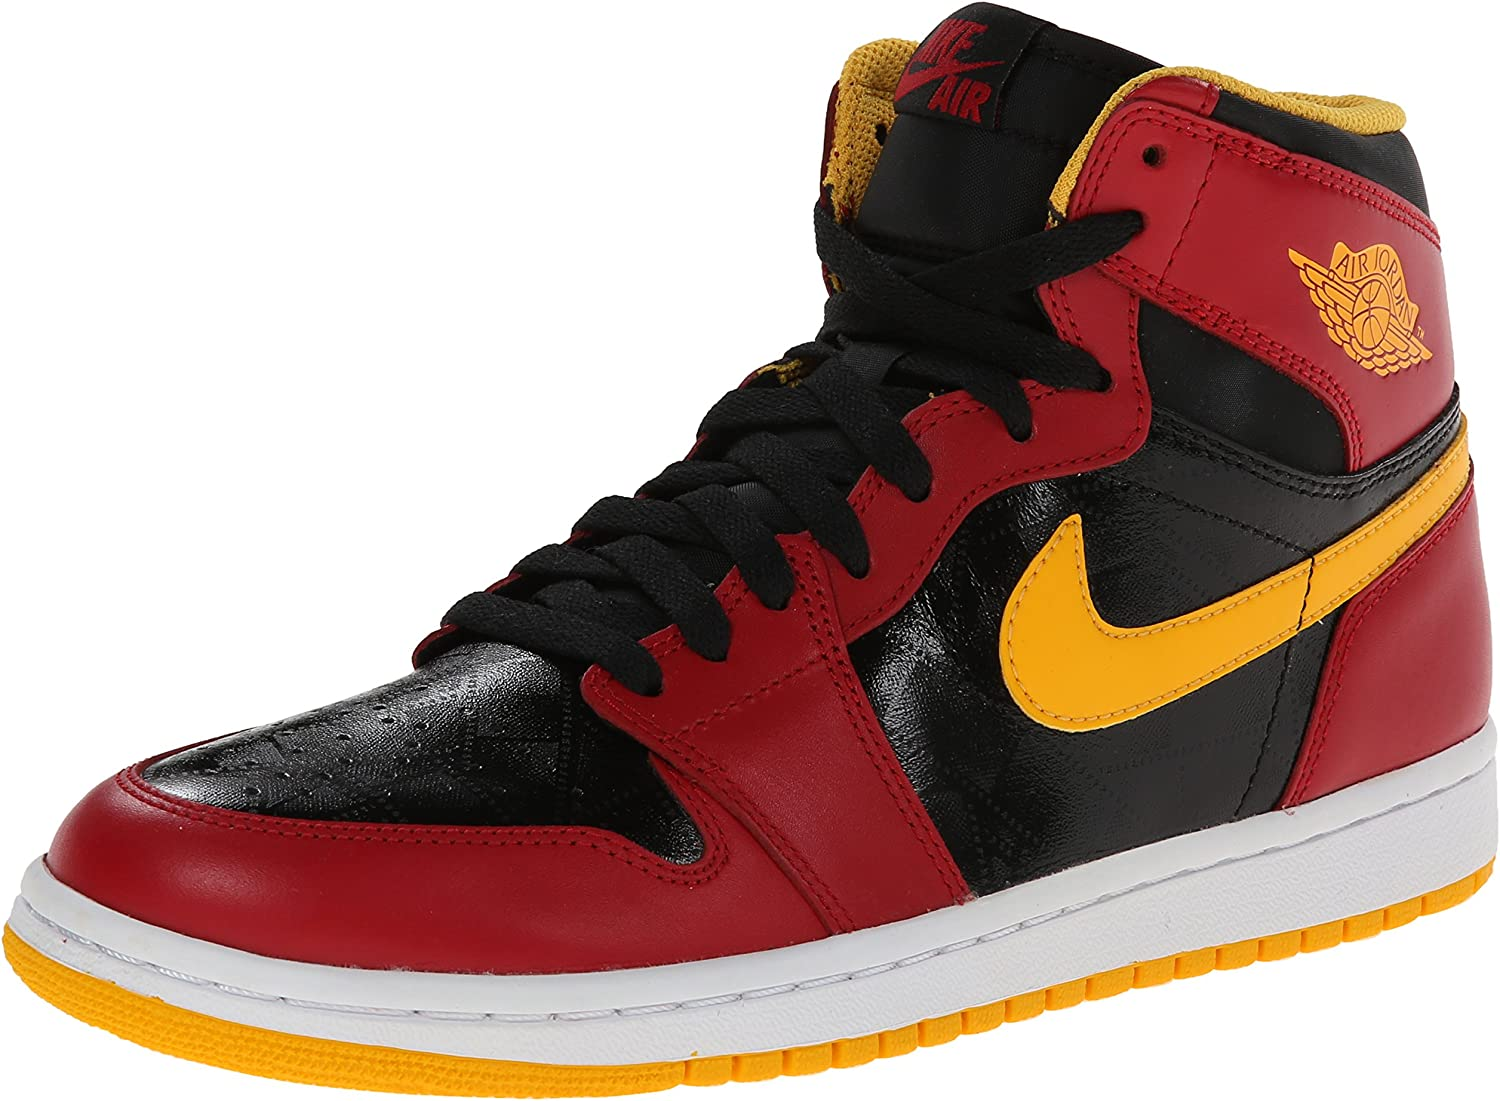 NIKE Air Jordan 1 Retro High OG,